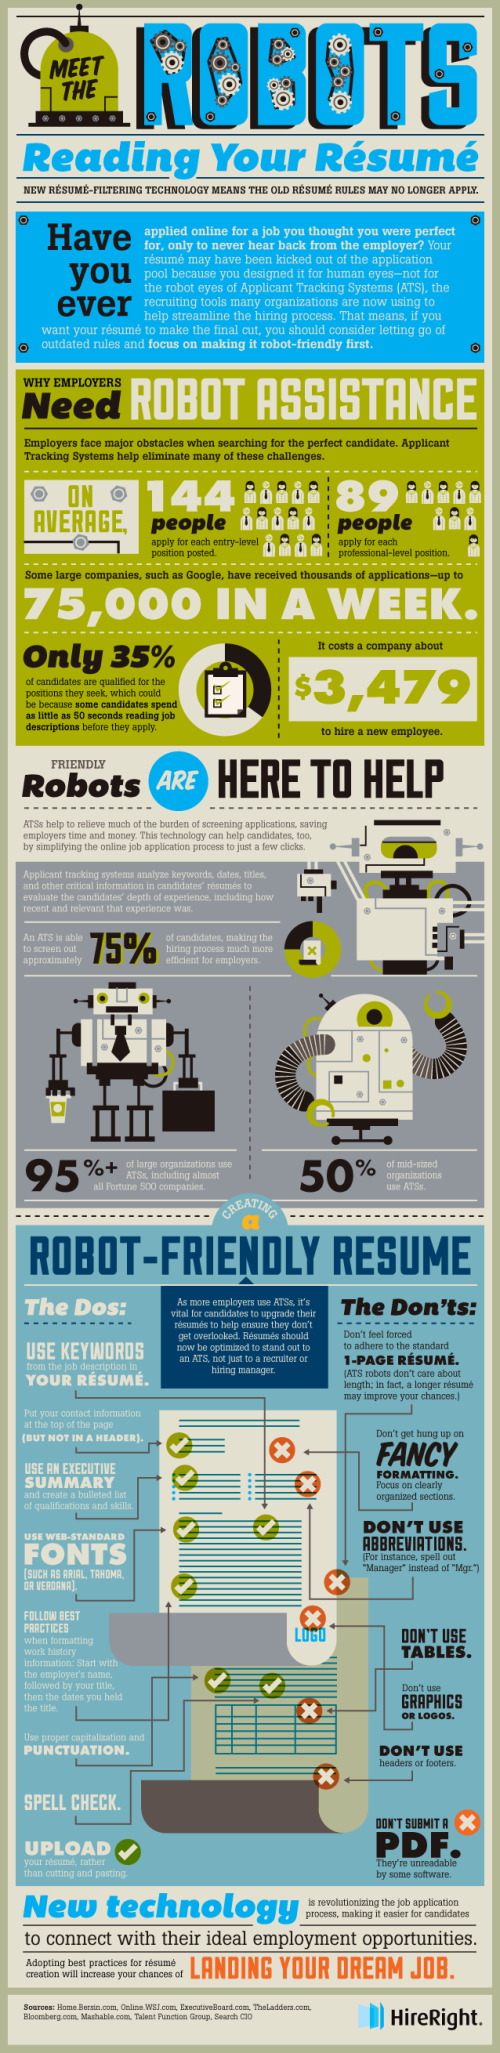 robots-reading-resume-ats-recruiting-infographic